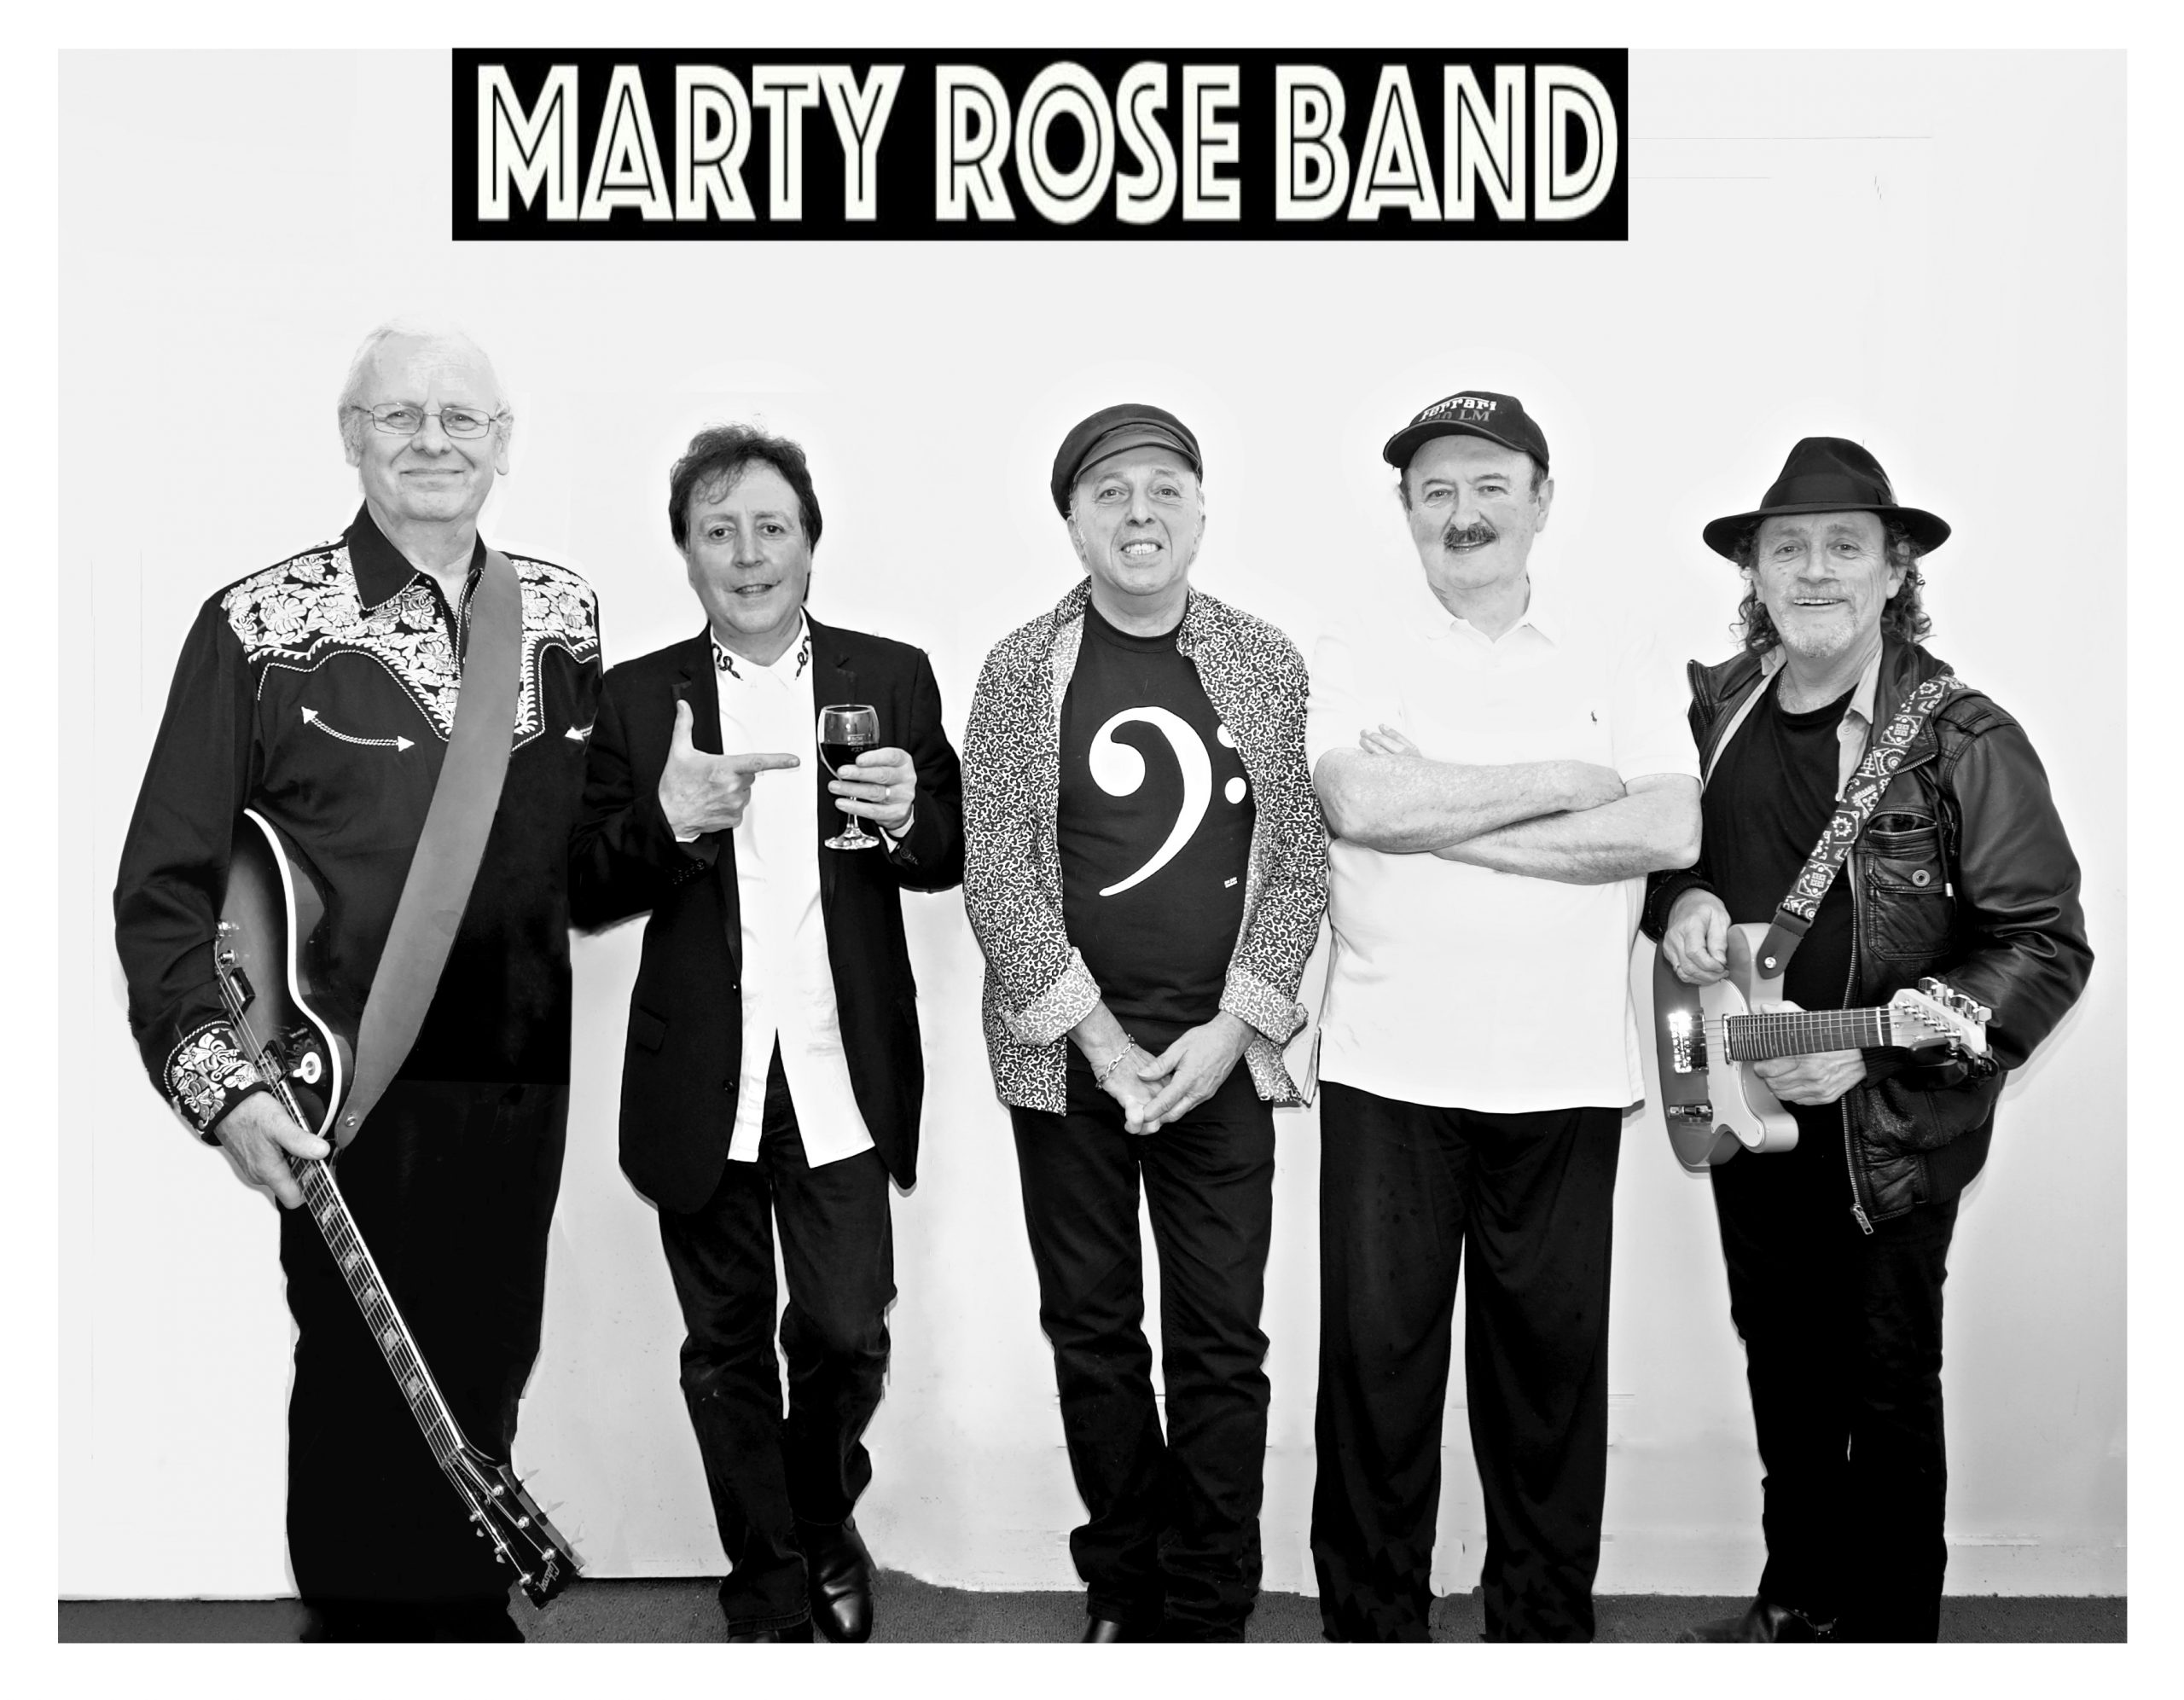 THE MARTY ROSE BAND